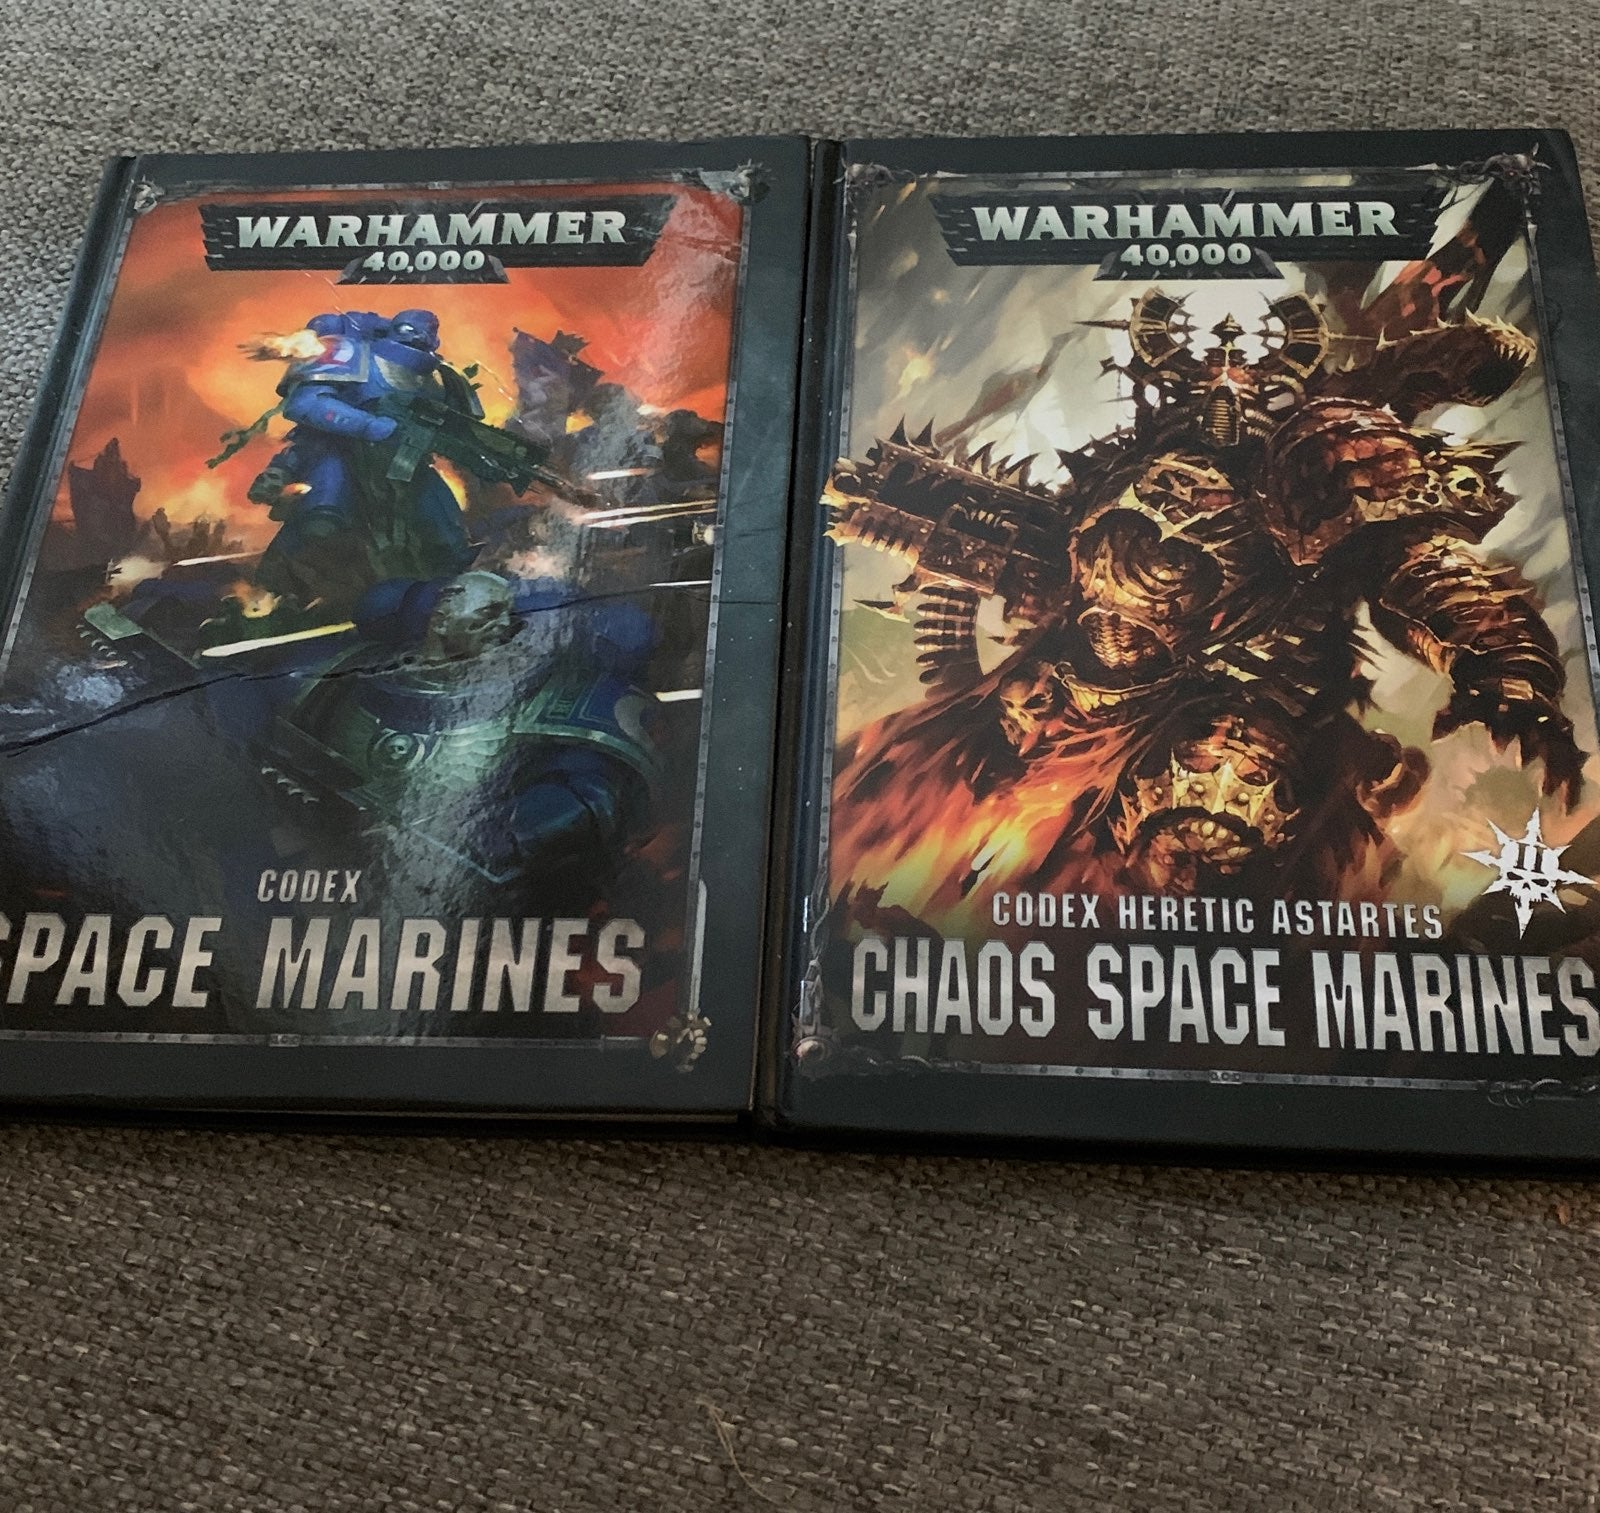 2 warhammer 40k codex's